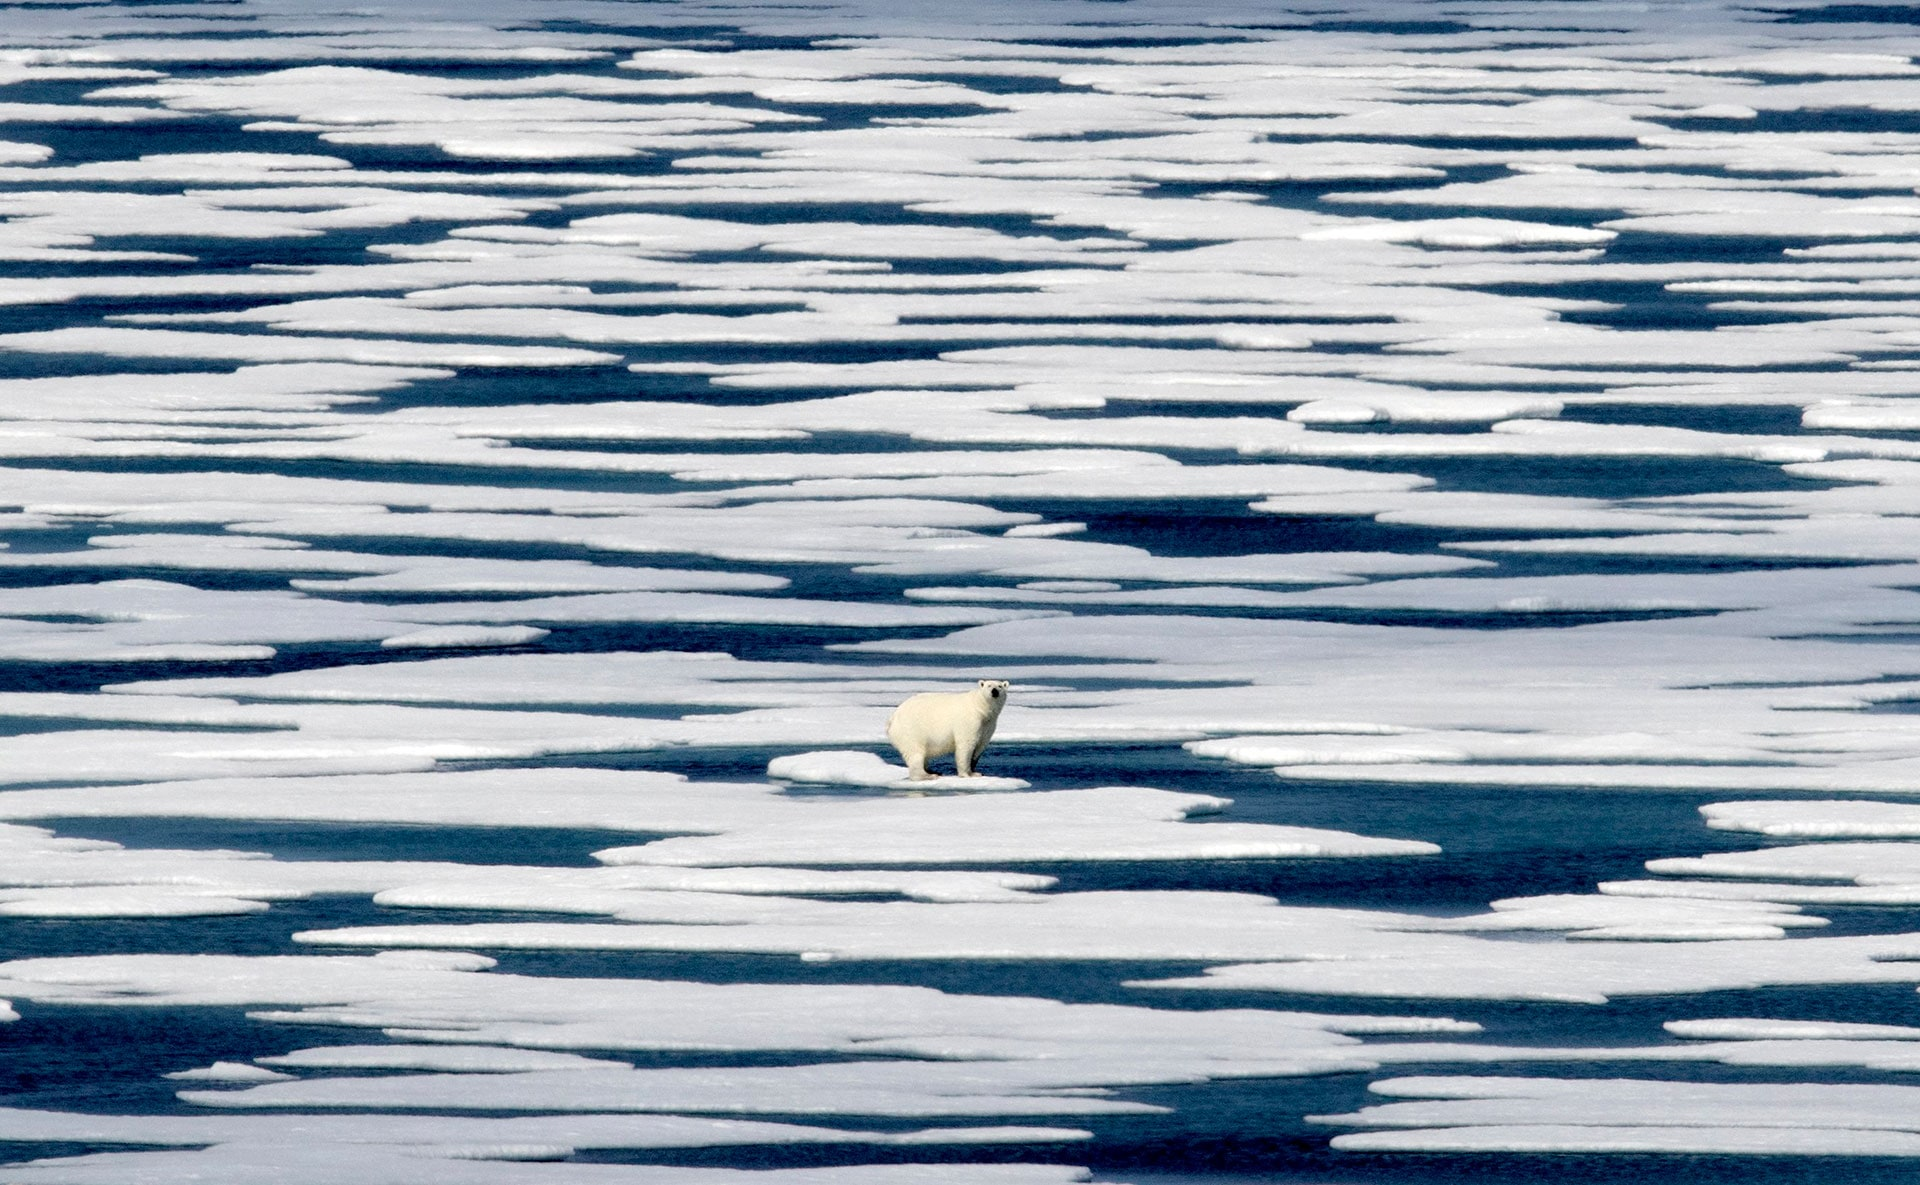 A polar bear stands on the ice